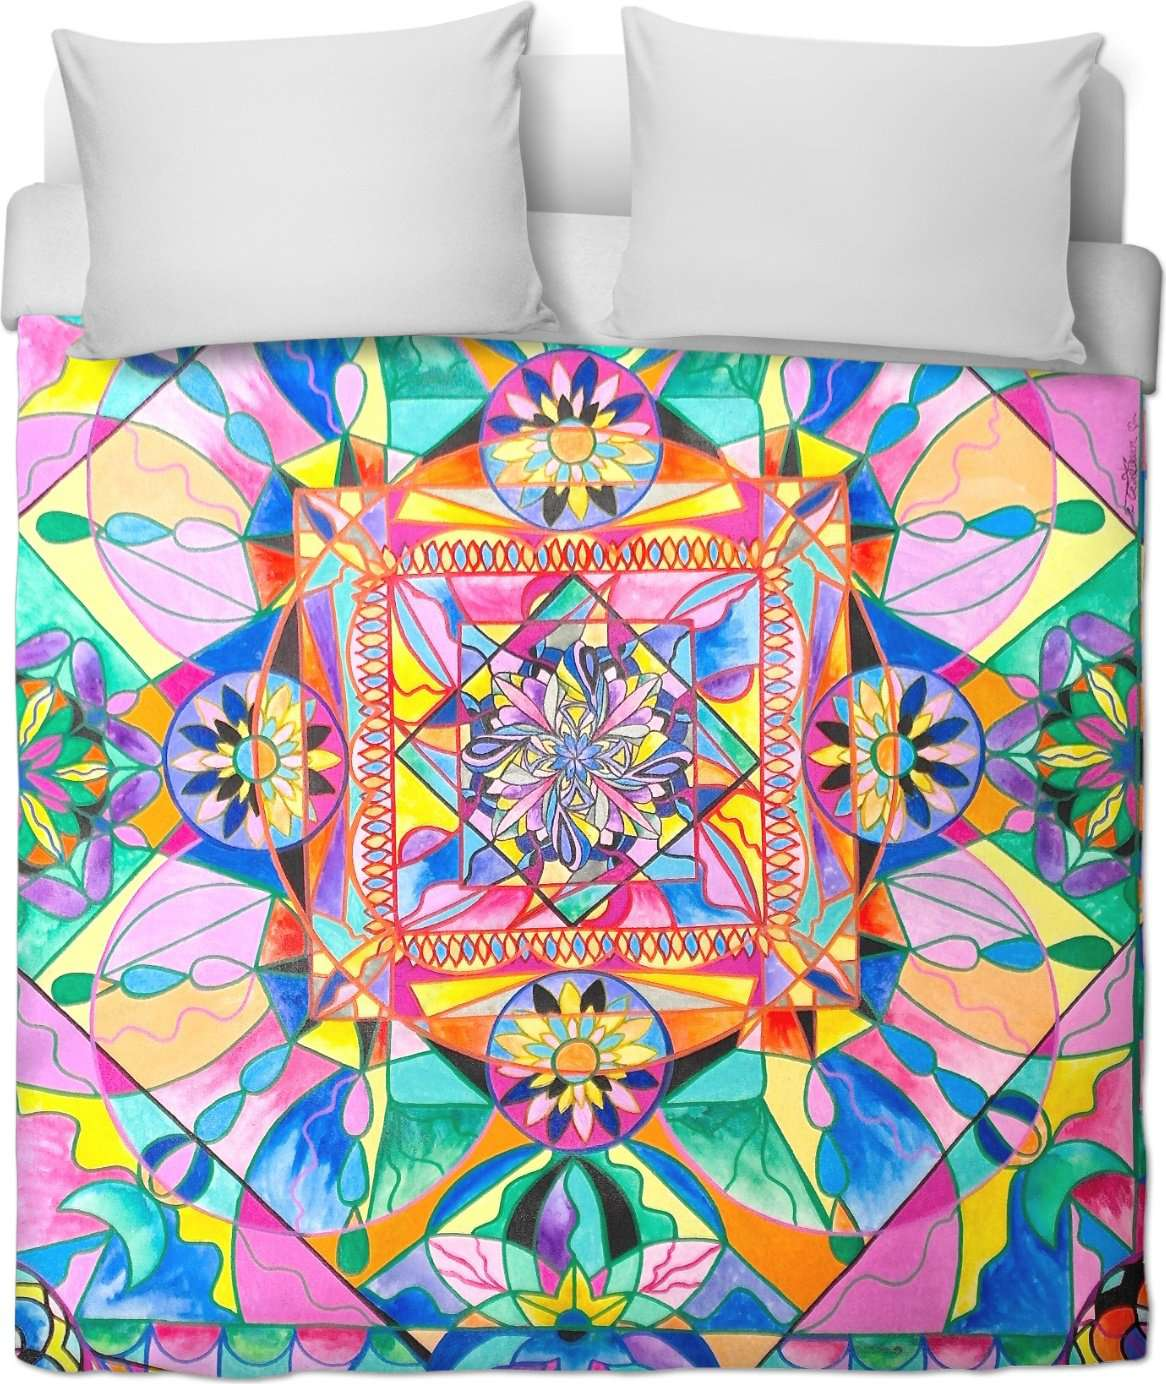 Renewal - Duvet Cover